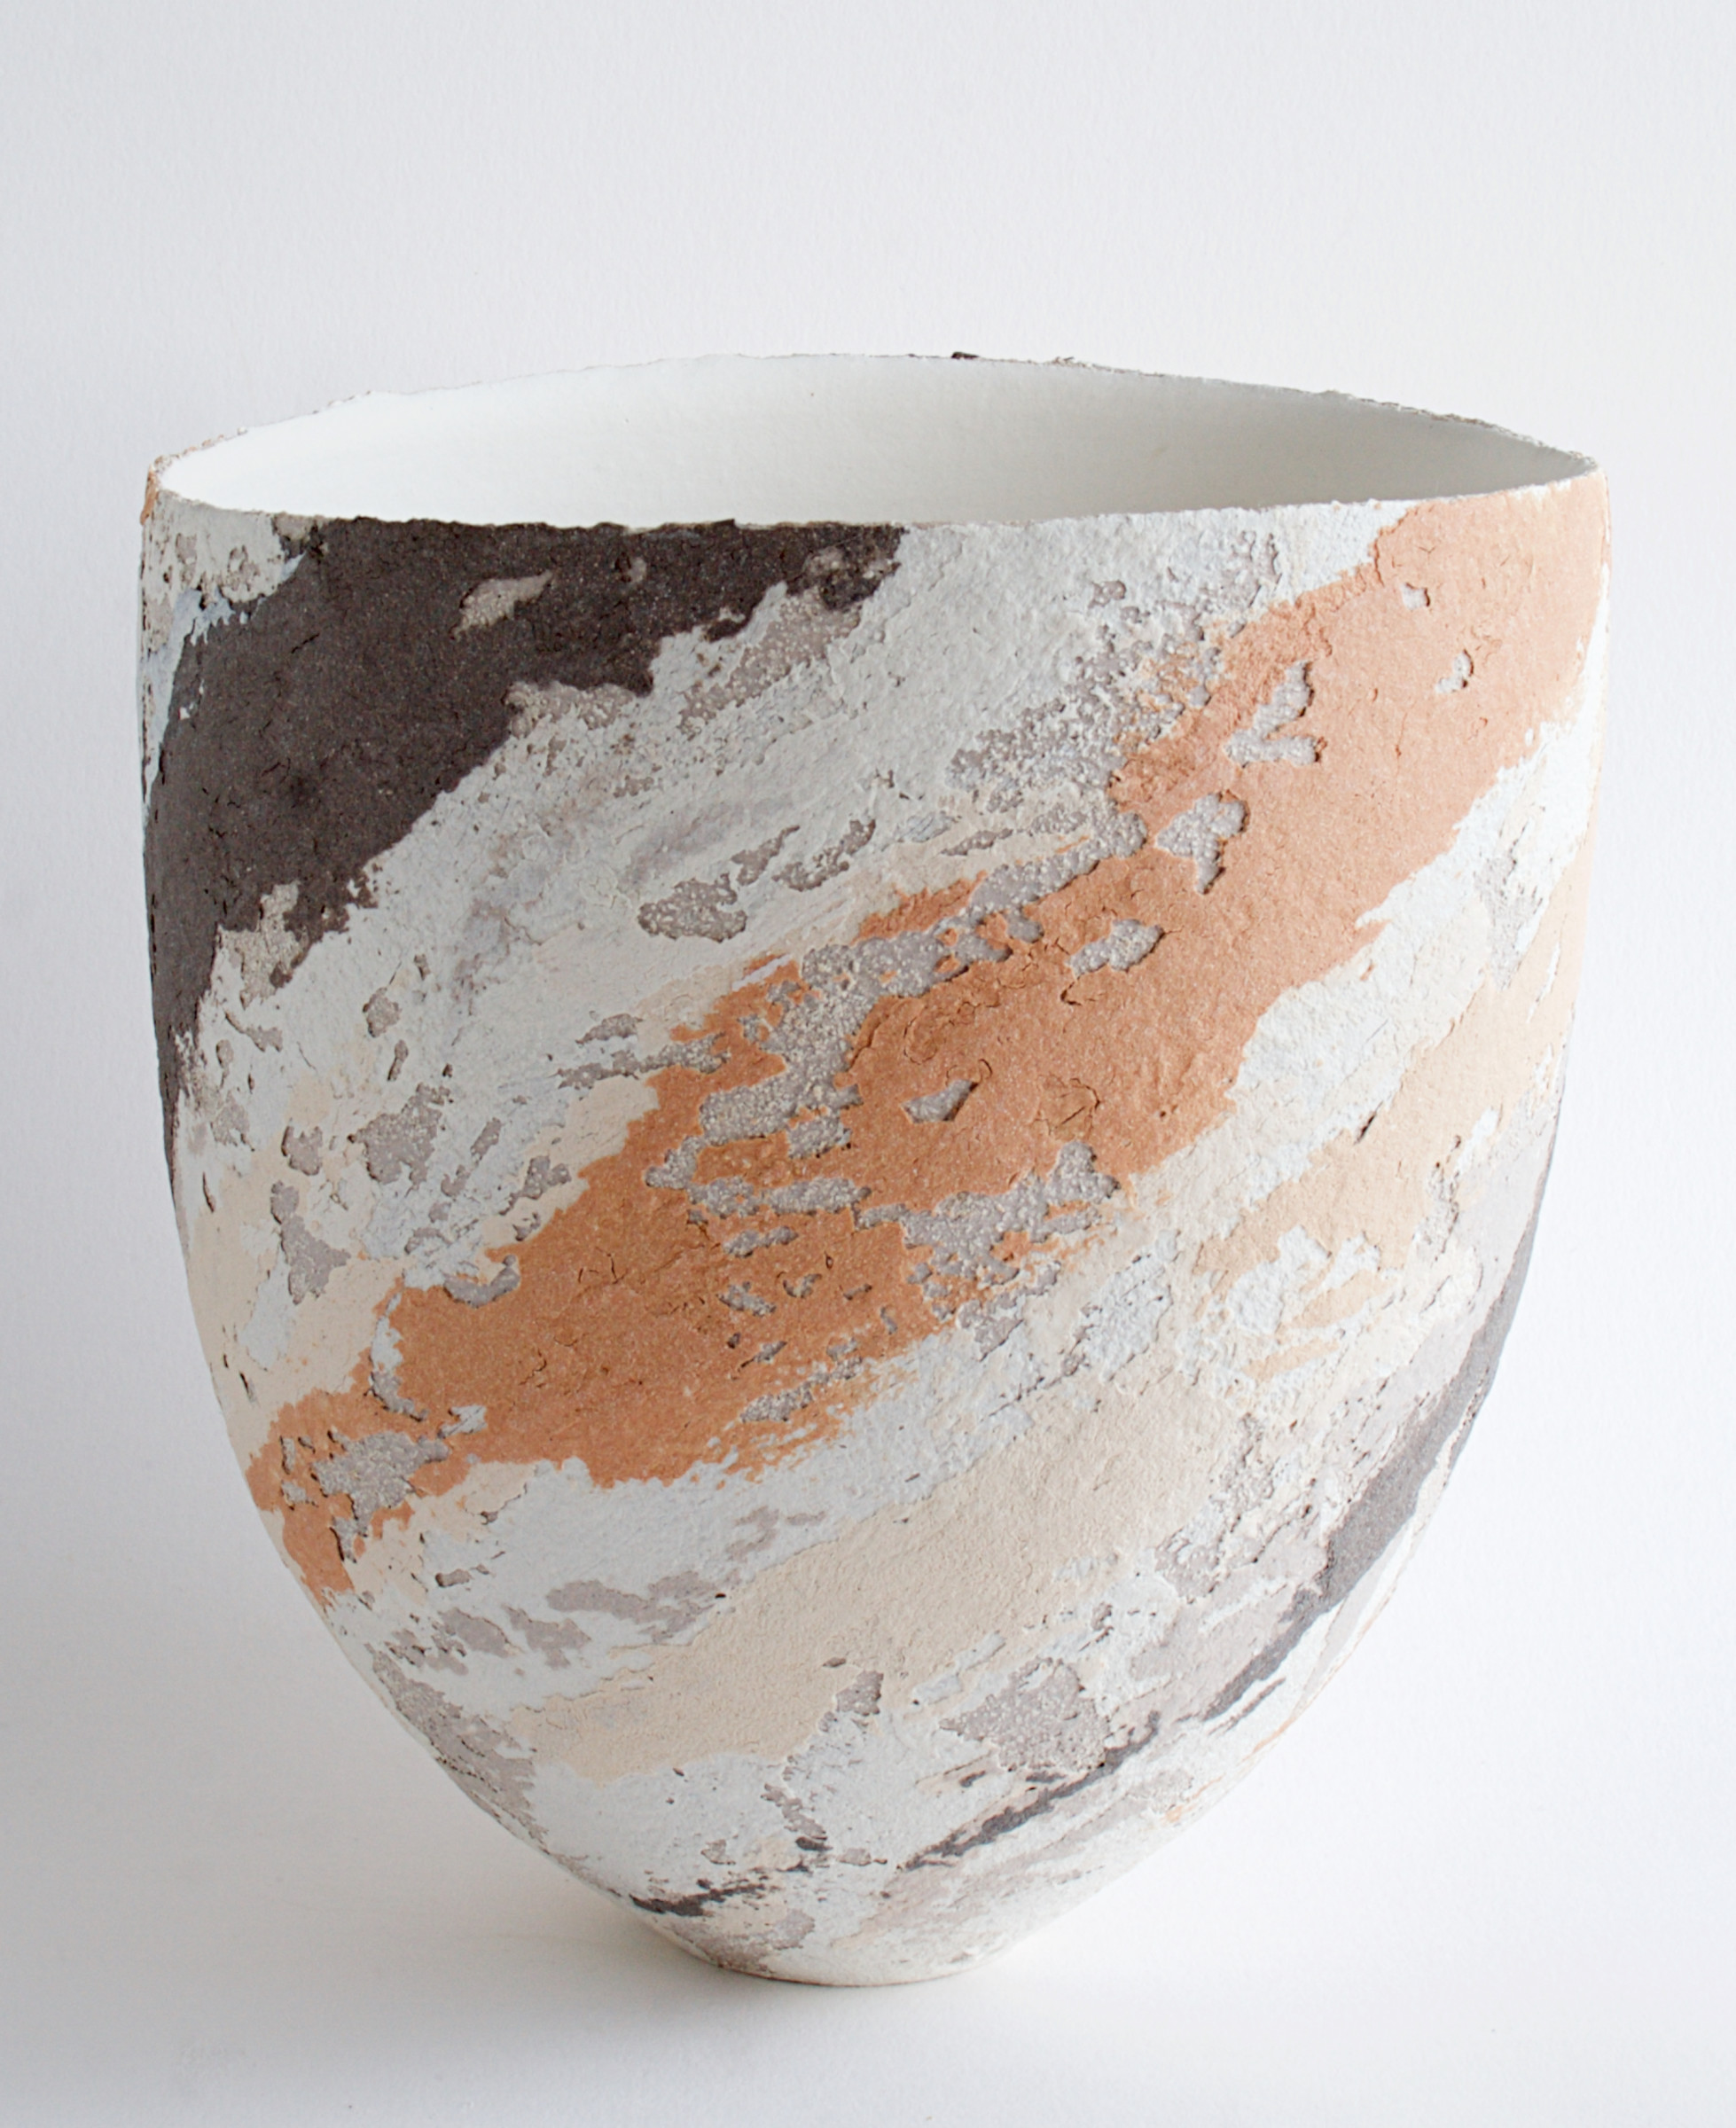 "<span class=""link fancybox-details-link""><a href=""/artists/79-clare-conrad/works/6936-clare-conrad-vessel-scooped-rim-2020/"">View Detail Page</a></span><div class=""artist""><strong>Clare Conrad</strong></div> <div class=""title""><em>Vessel, scooped rim</em>, 2020</div> <div class=""medium"">Stoneware</div> <div class=""dimensions"">h. 19 cm</div><div class=""price"">£385.00</div><div class=""copyright_line"">Copyright The Artist</div>"